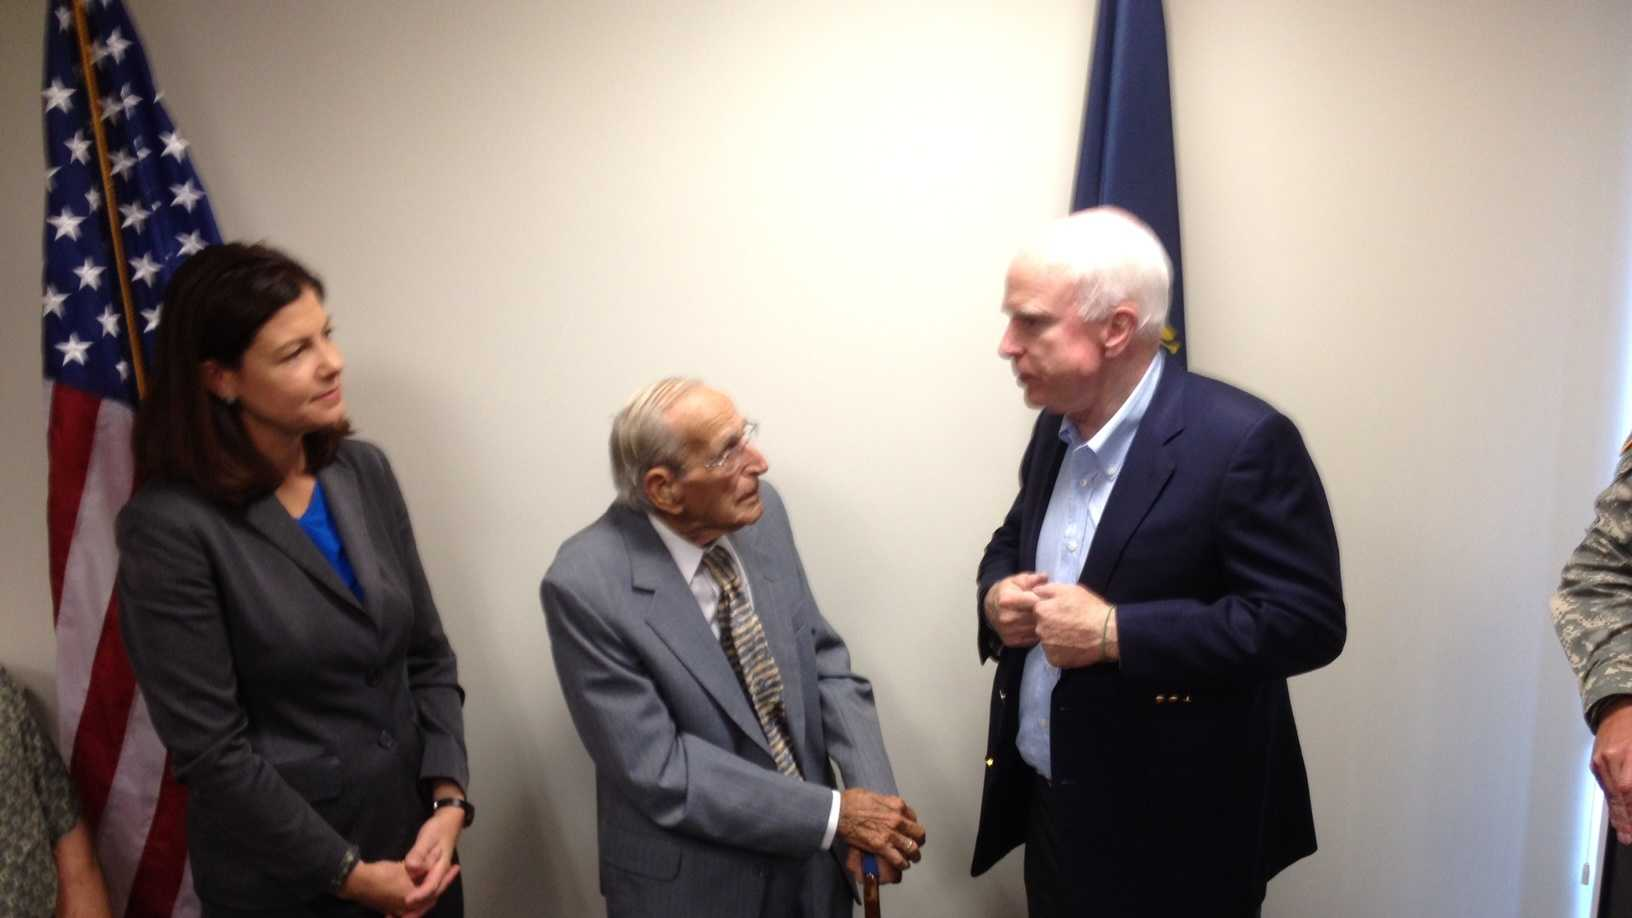 Sen. John McCain joined Sen. Kelly Ayotte to hand service medals to Gerard Hebert, a World War II veteran.